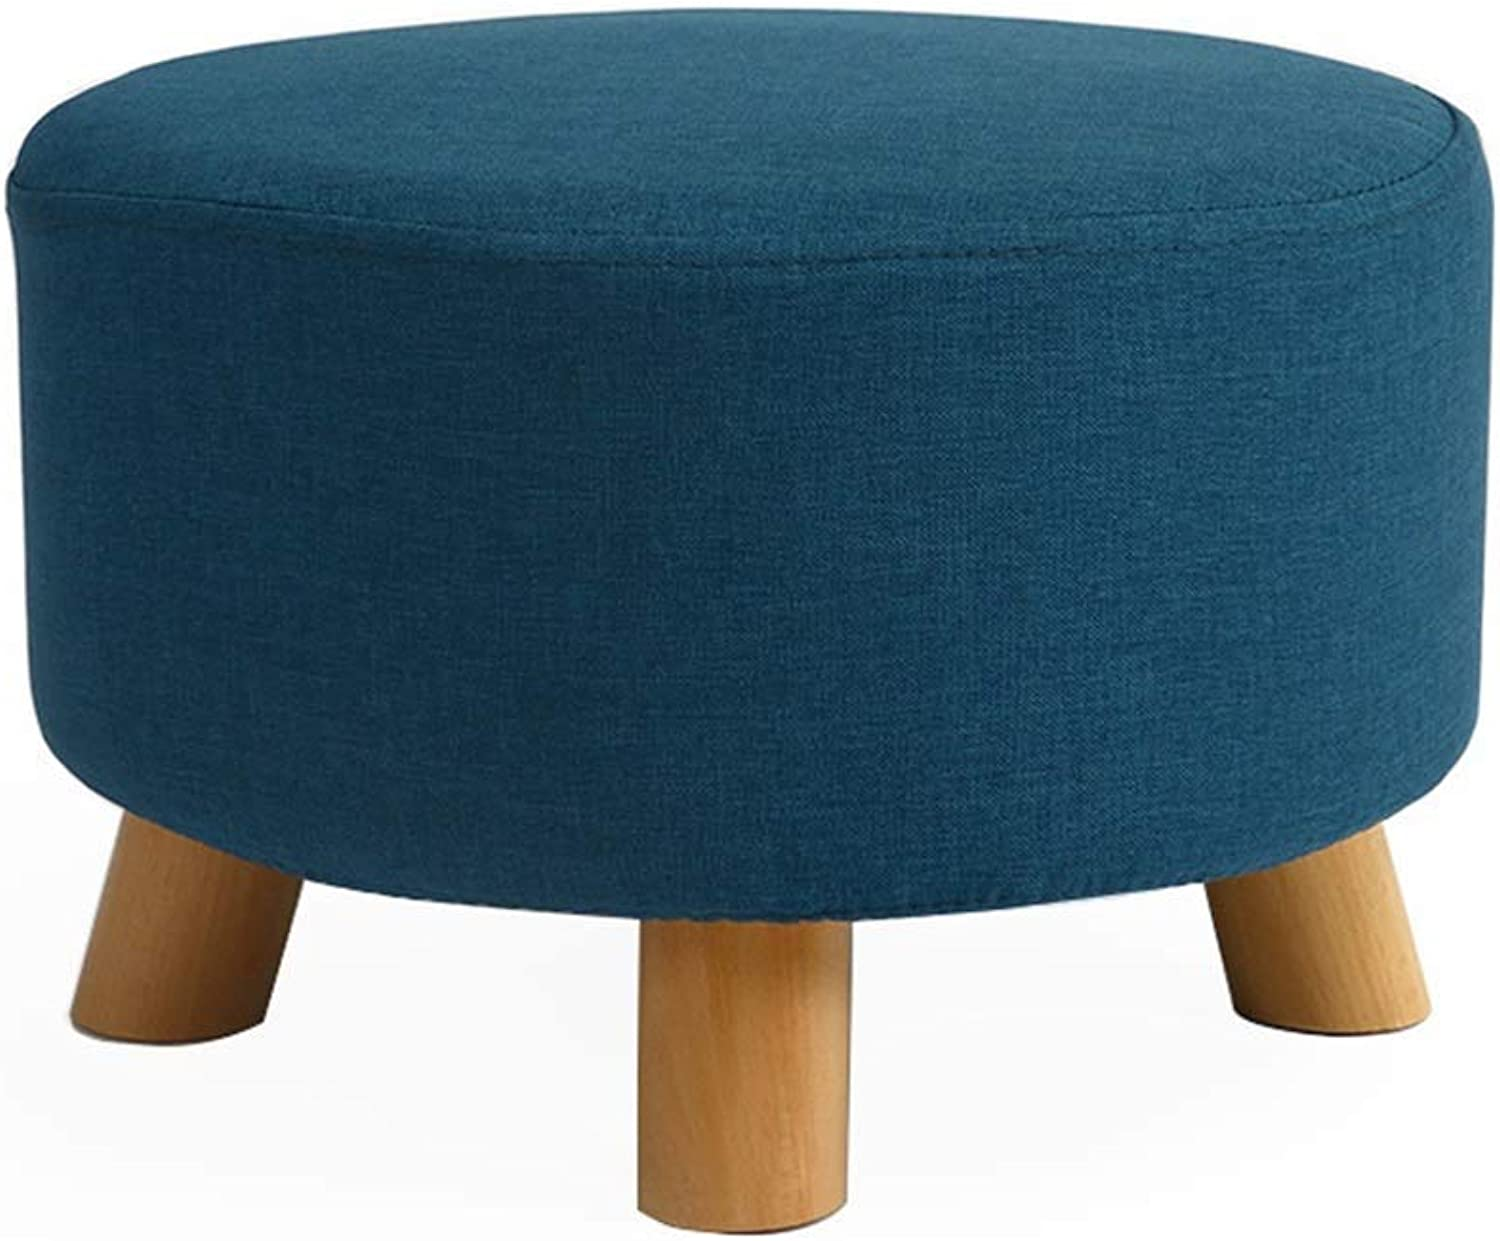 JUN Change shoes Footstool,Round Upholstered Pouffe shoes Stool with Wooden Legs,42×42×26cm (L×W×H) (color   B)